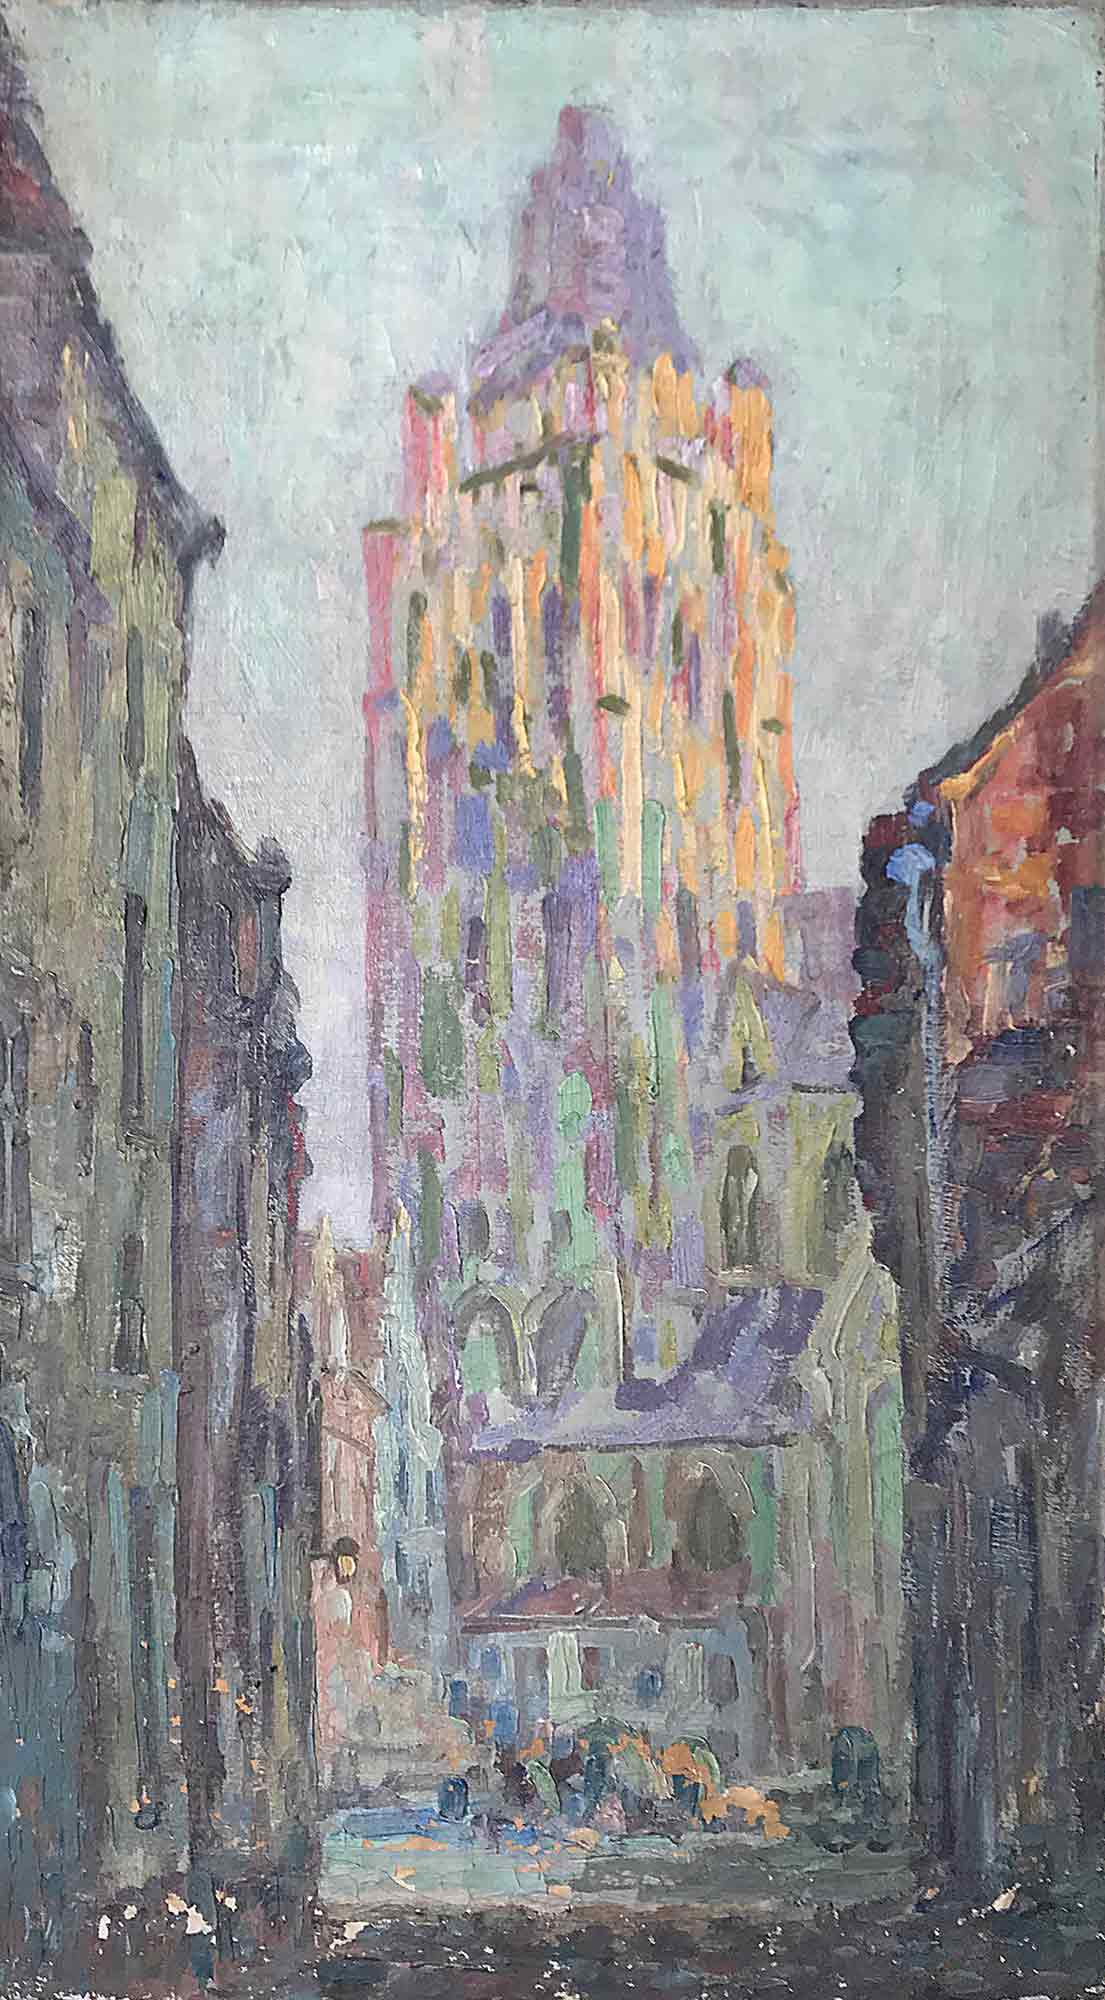 Church Tower - Oil on canvas signed with monogram c. 1900